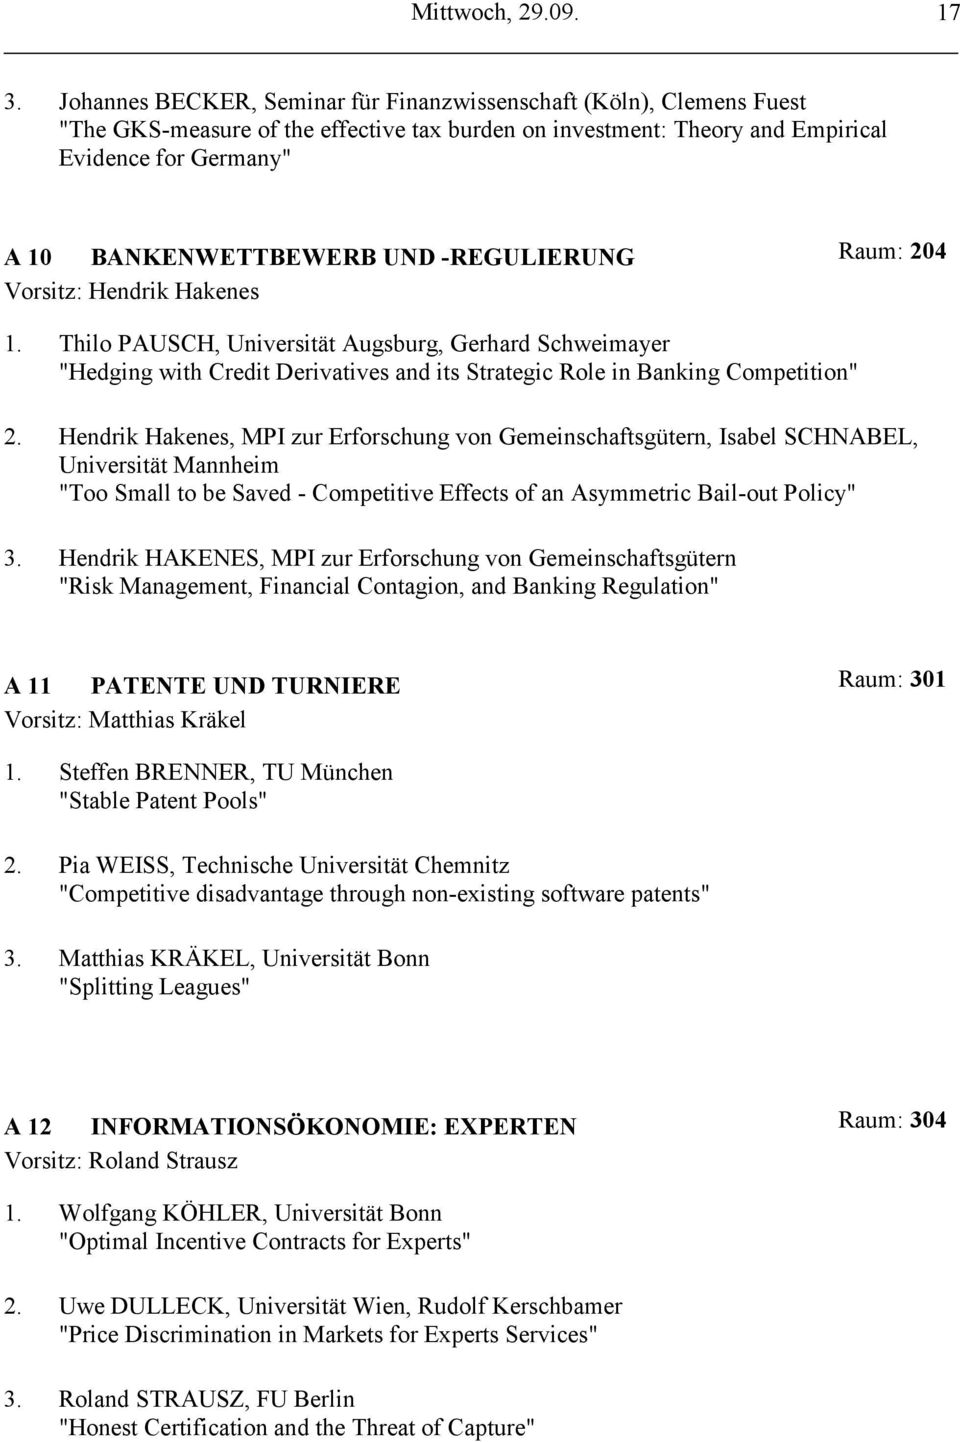 "-REGULIERUNG Vorsitz: Hendrik Hakenes Raum: 204 1. Thilo PAUSCH, Universität Augsburg, Gerhard Schweimayer ""Hedging with Credit Derivatives and its Strategic Role in Banking Competition"" 2."